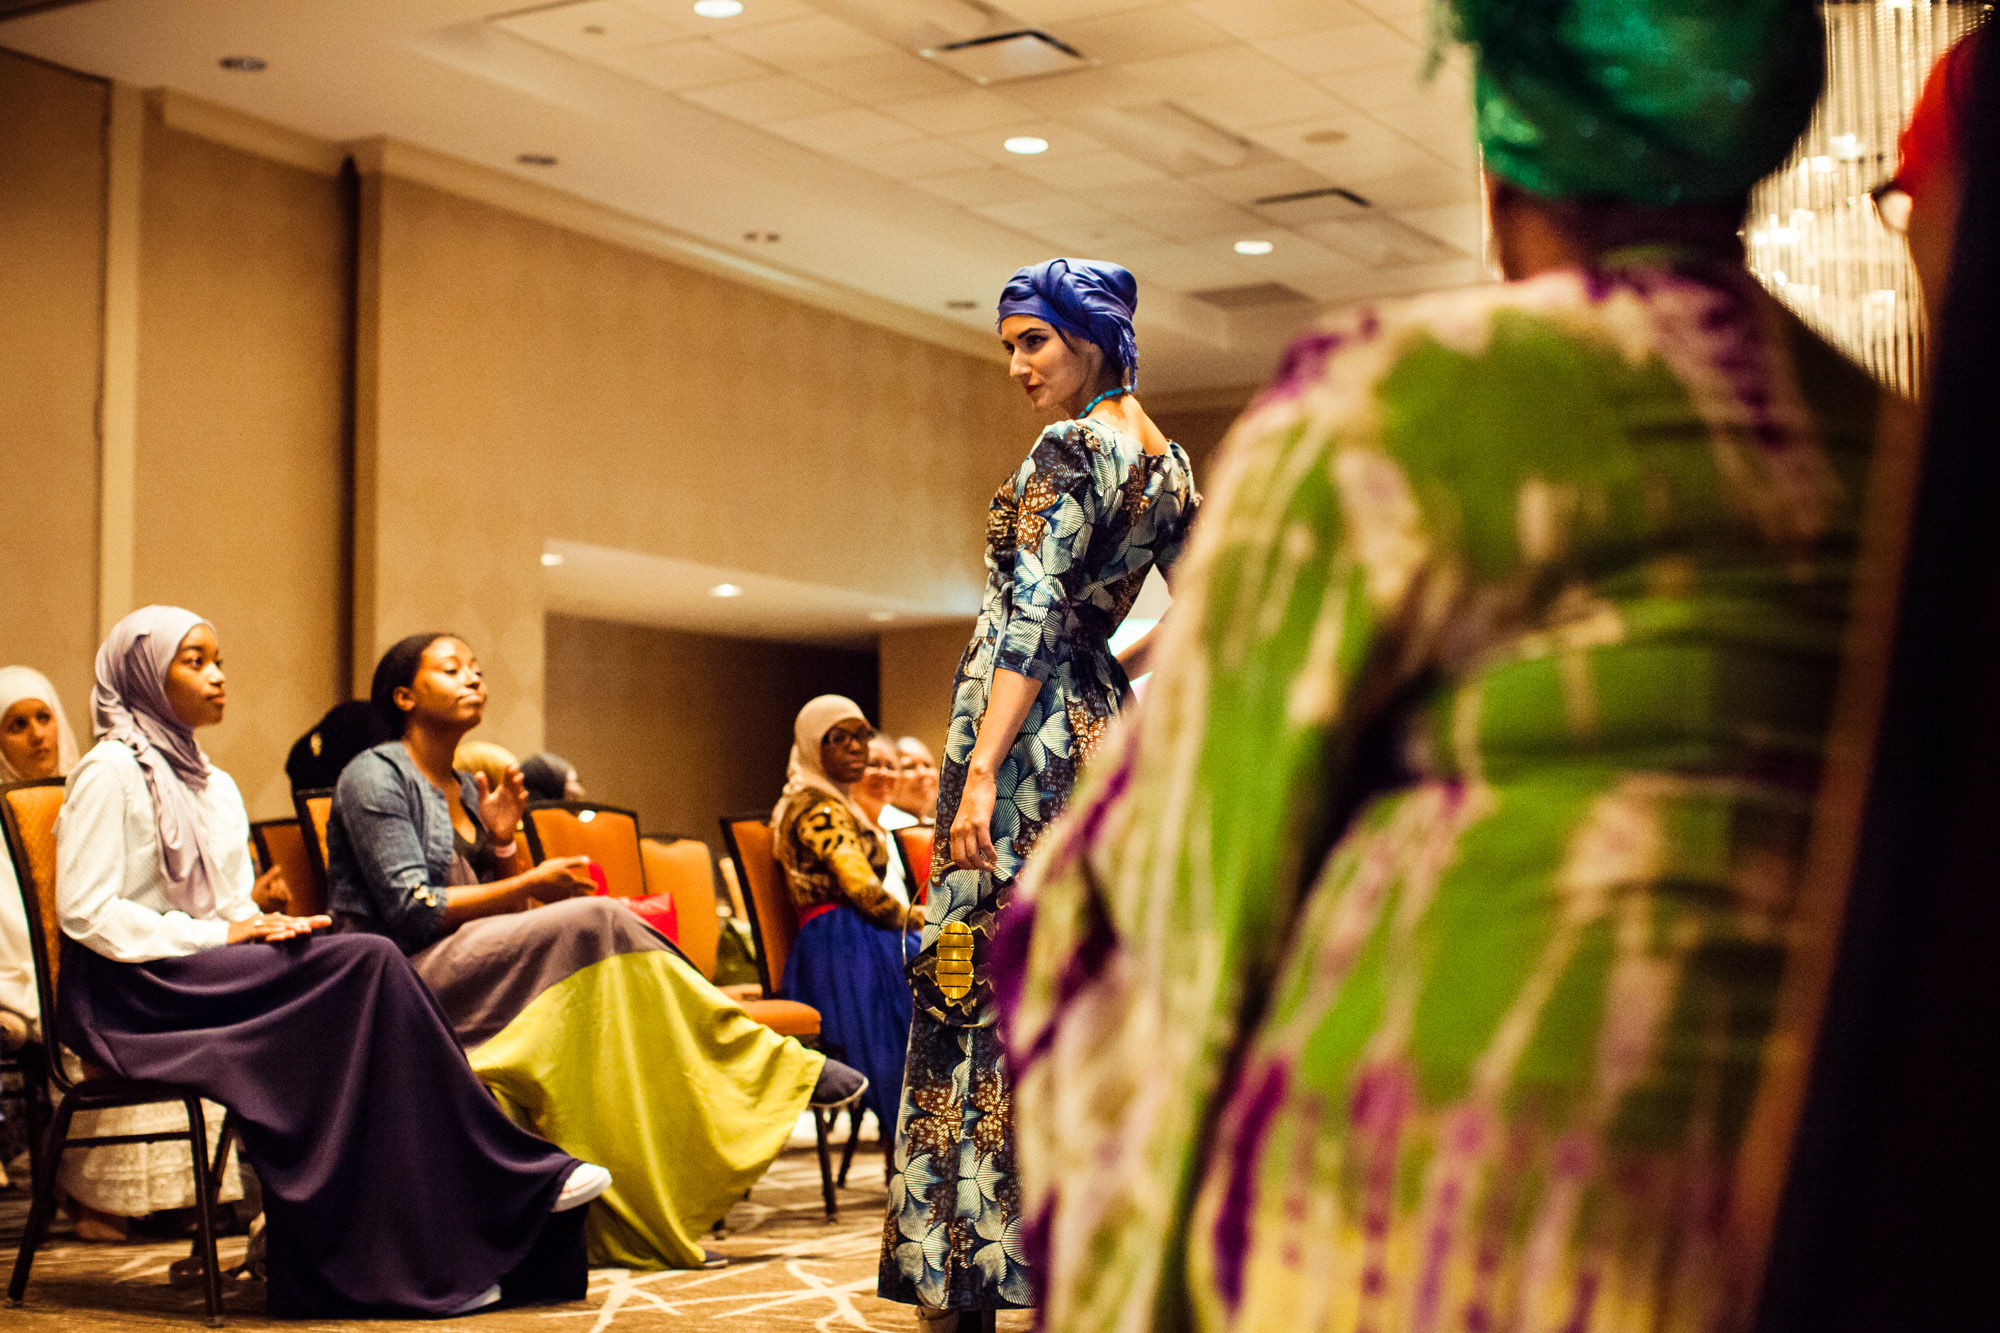 Model Lilly Matini pauses to strike a pose at the Reaching All HIV+ Muslims in America (RAHMA) fashion show in Washington, DC on Aug. 16, 2014.